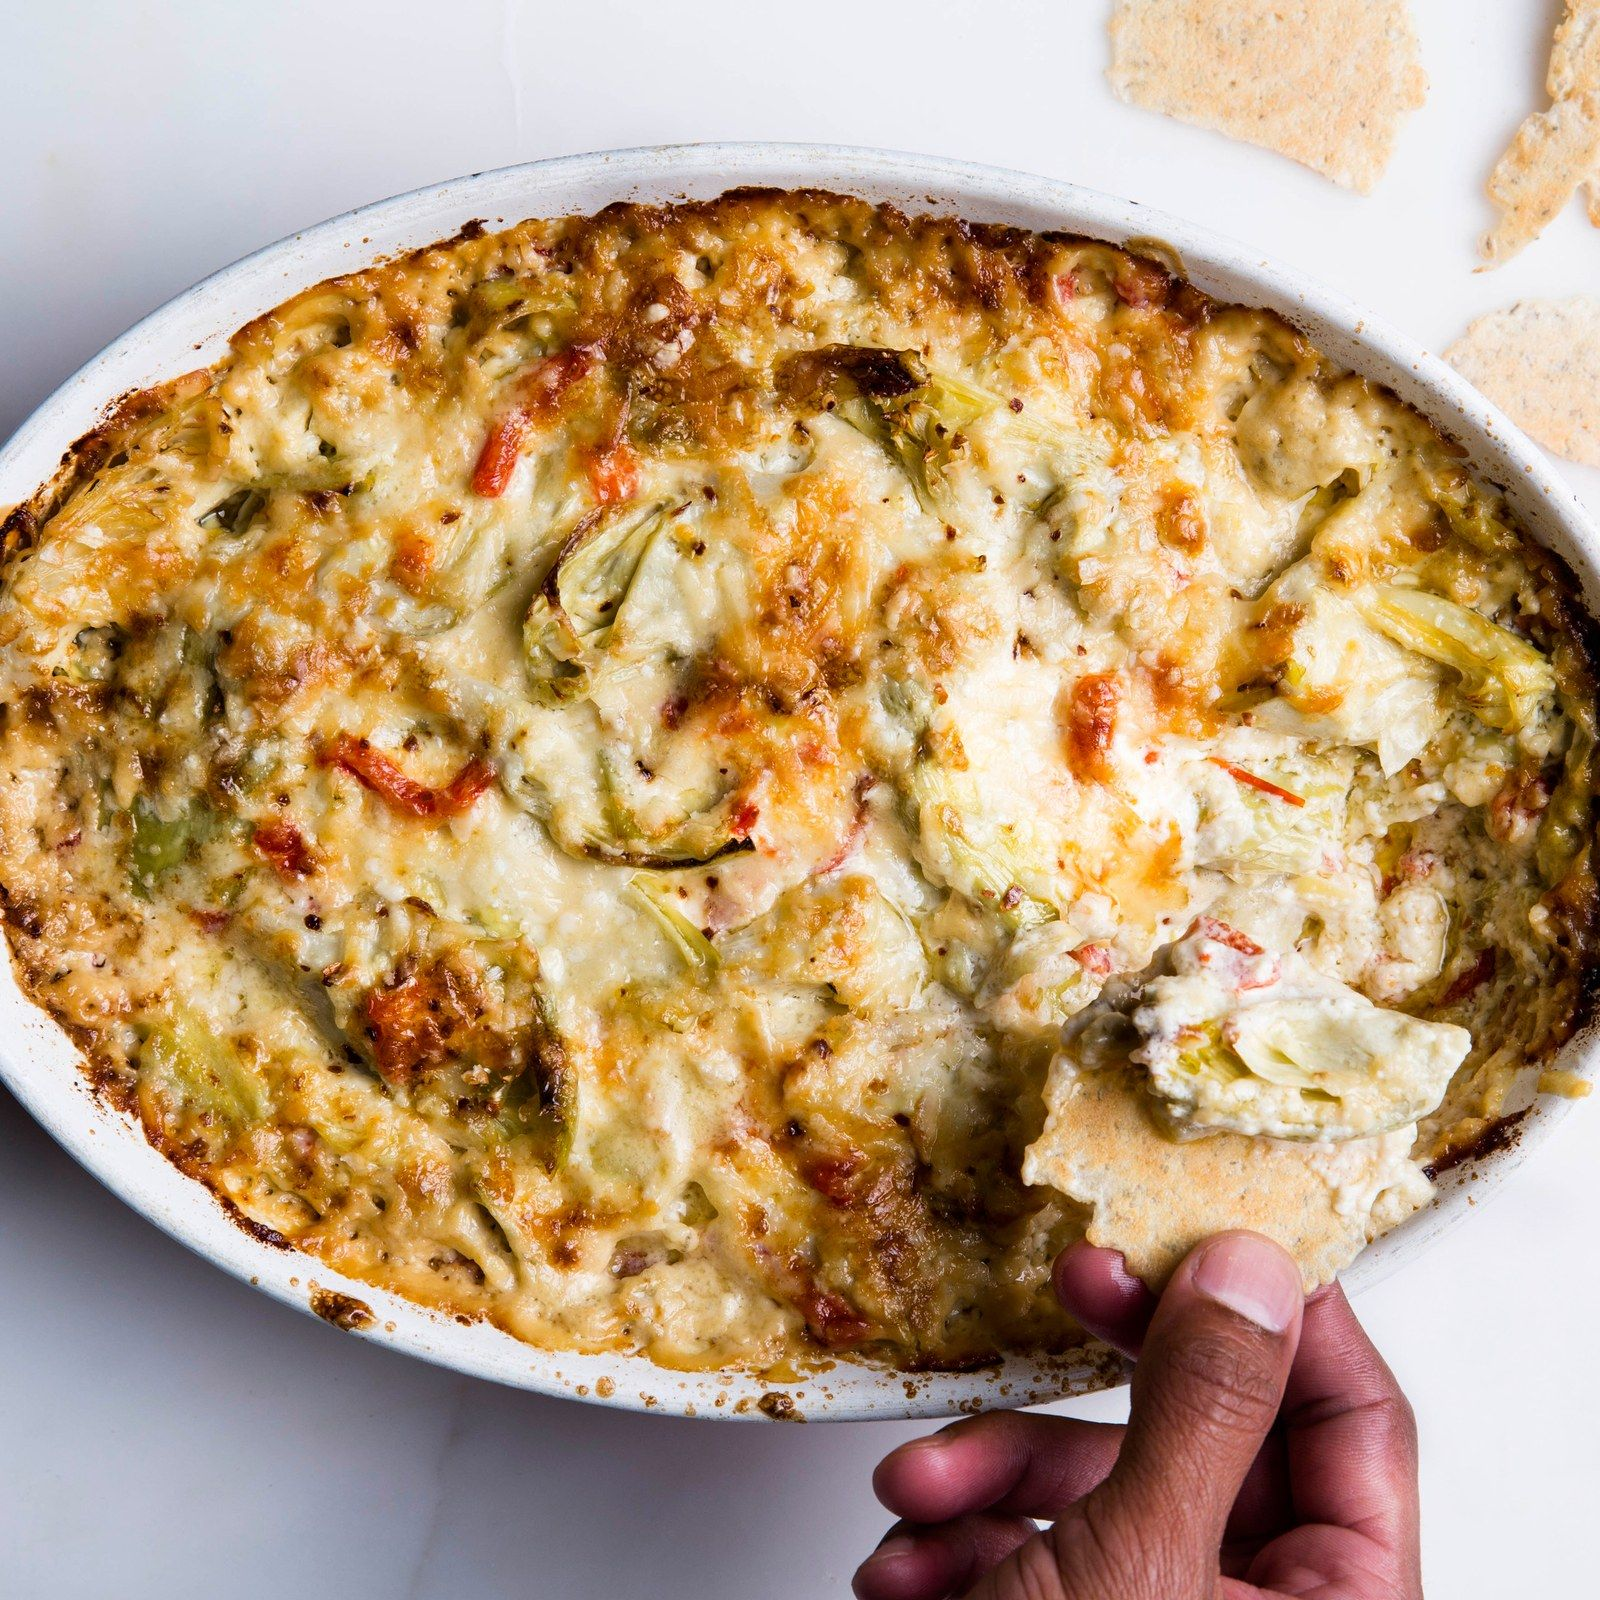 50 Super Bowl Dip Recipes, from Guacamole to Onion Dip